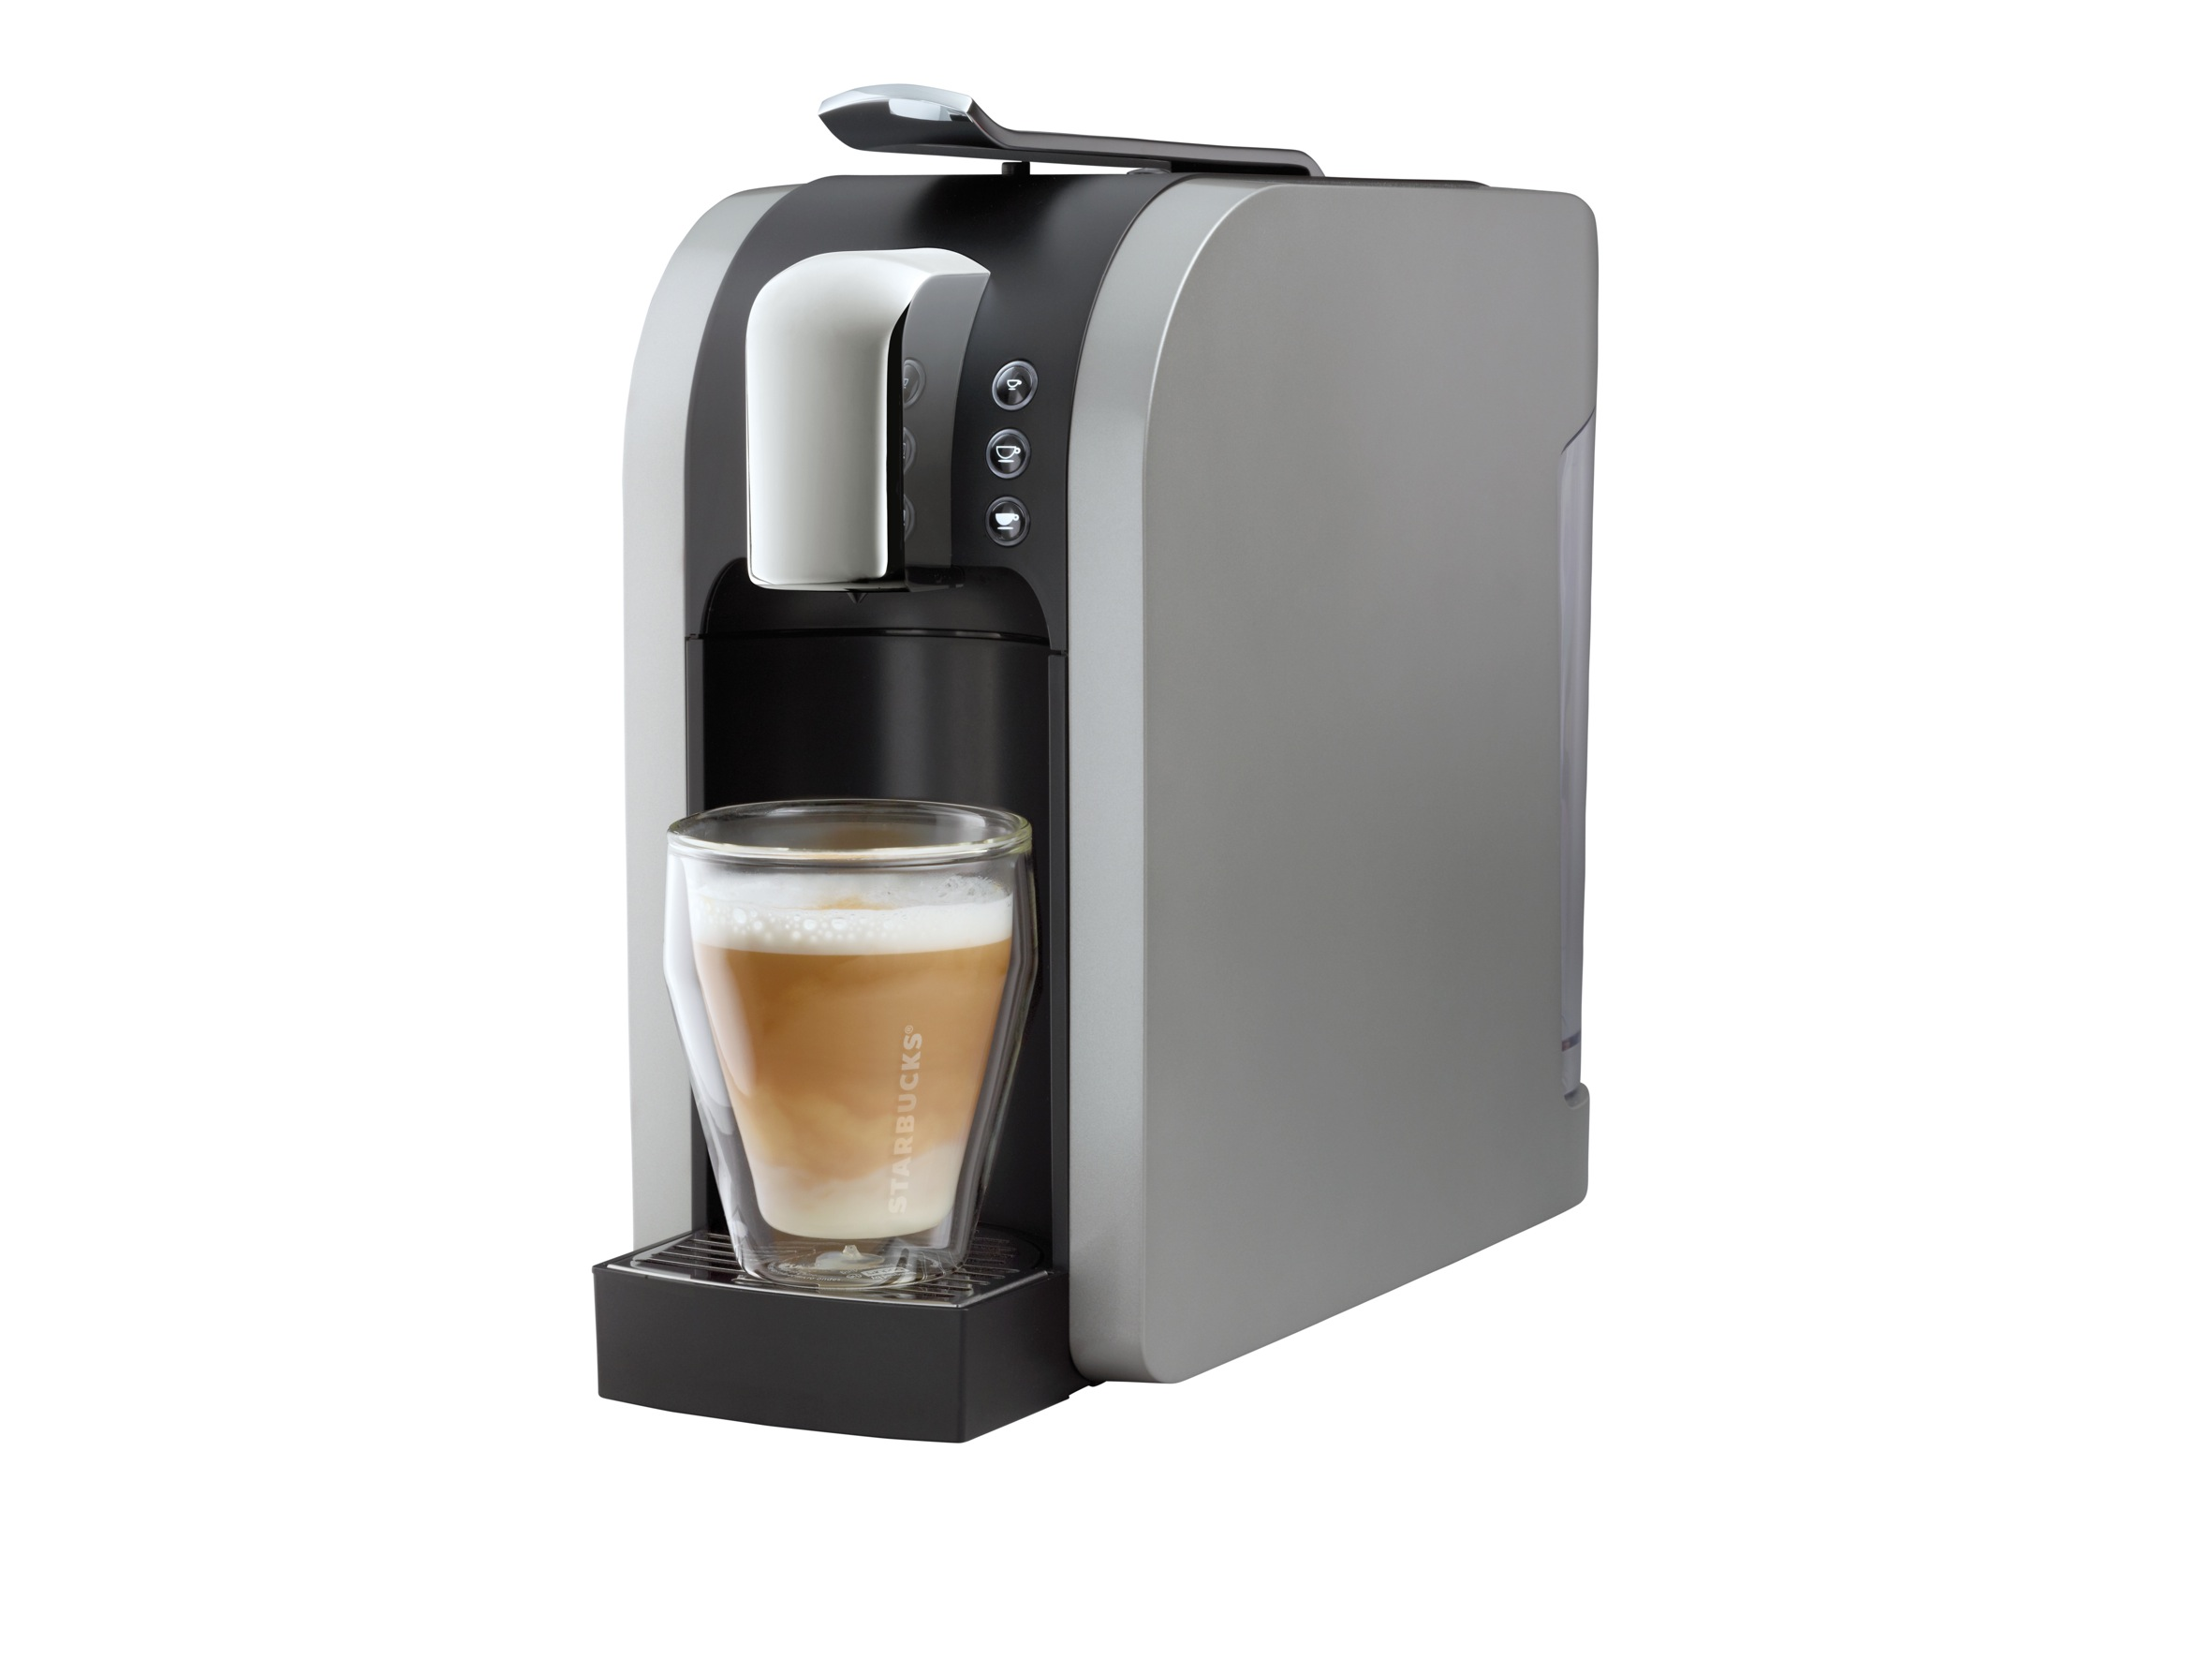 Verismo 580 from Starbucks: tapping in-home coffee market